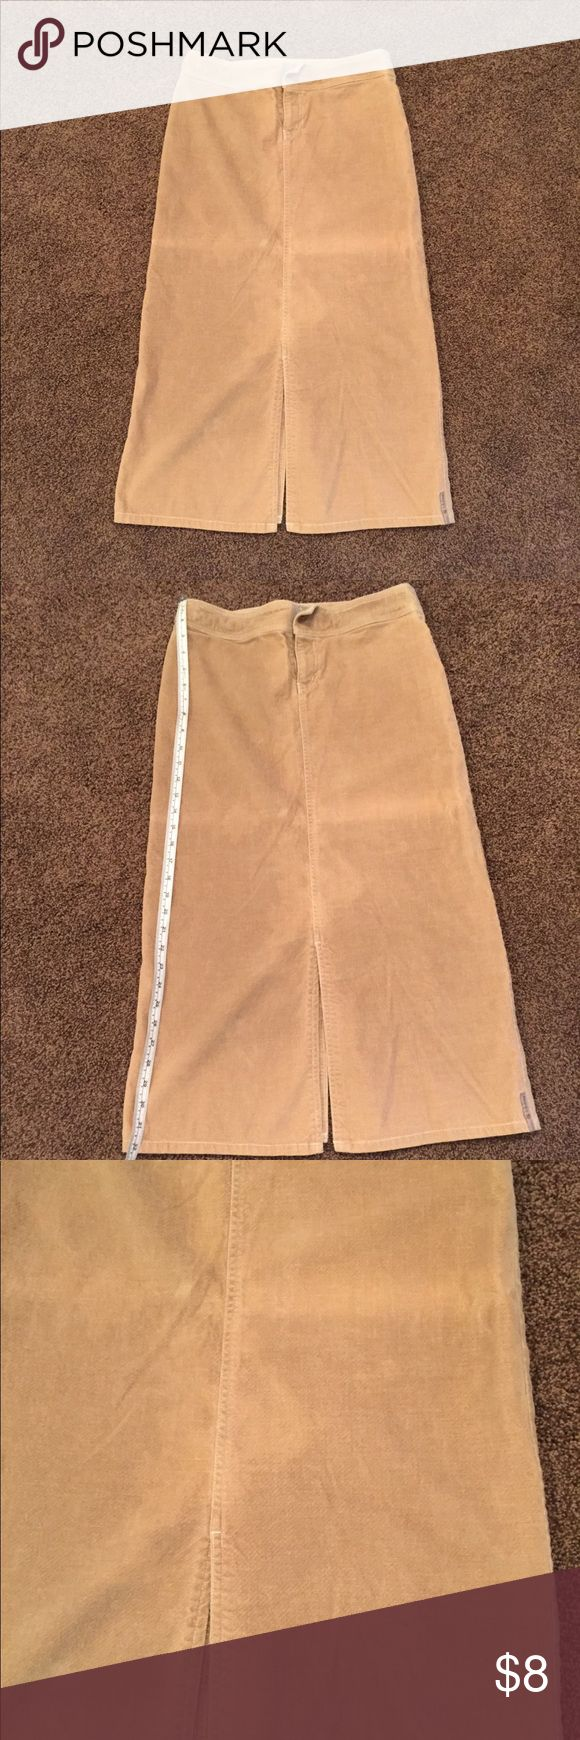 Billabong Long Tan Brown Skirt Never worn. Long tan skirt 100% cotton. Feels like a soft corduroy. There are hanger marks that I haven't tried to wash out. Very cute. Motivated to sell!!! Send me an offer or I'm donating it 😊 Billabong Skirts A-Line or Full